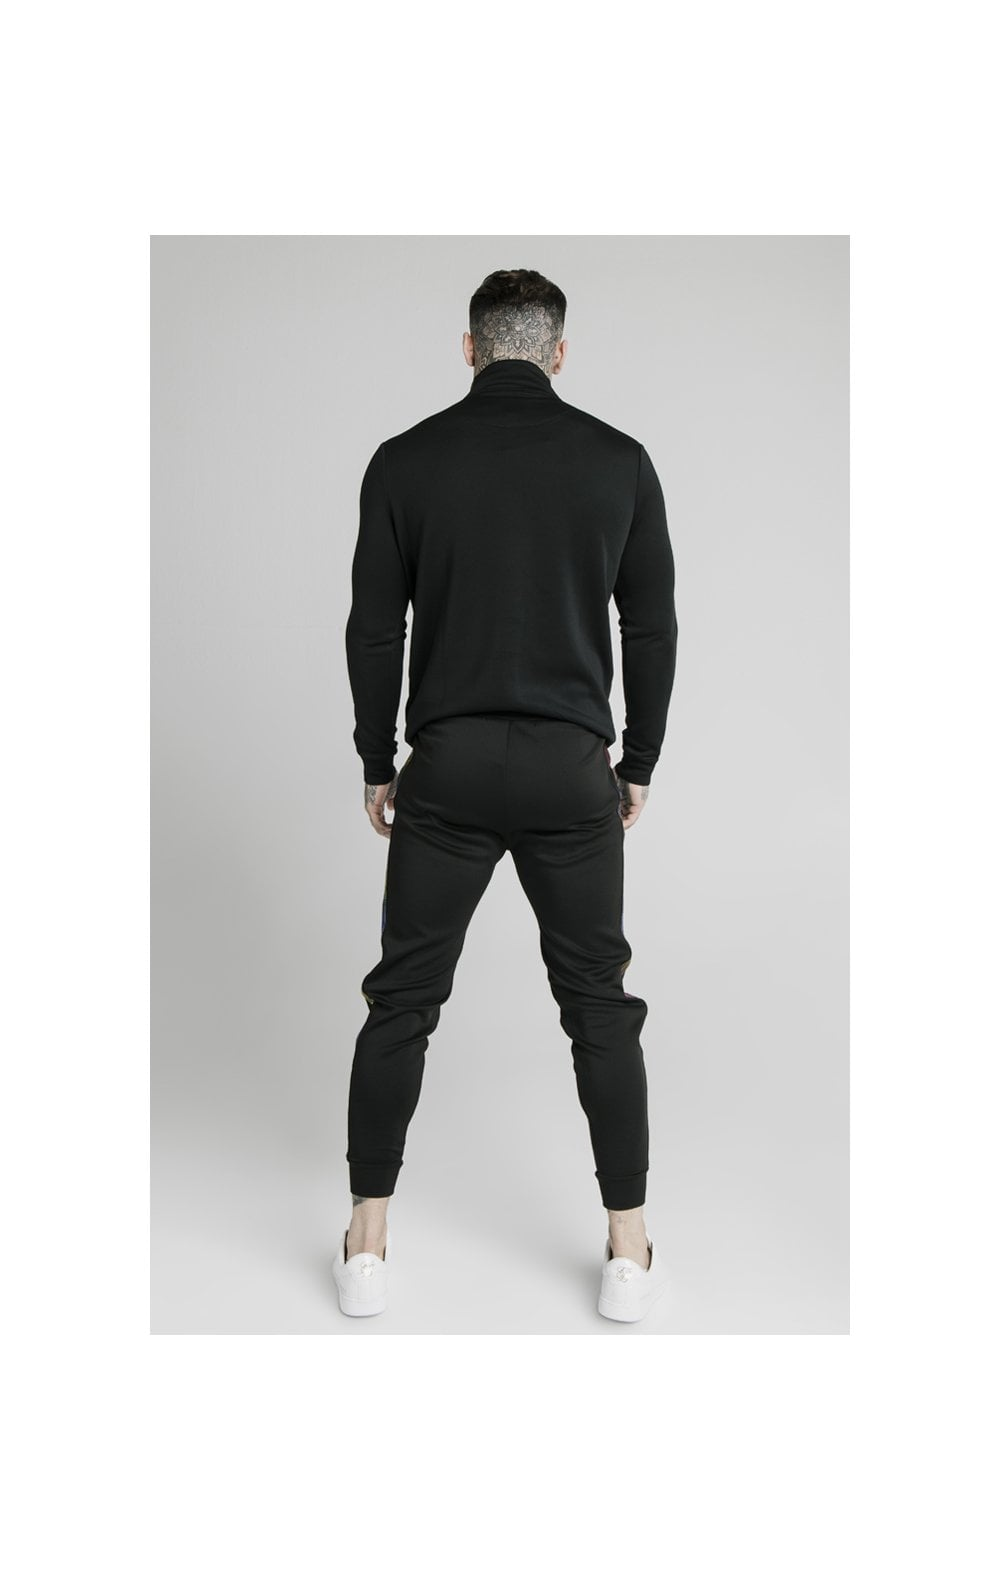 SikSilk Quarter Zip Fade Runner Funnel Neck Track Top - Black (4)